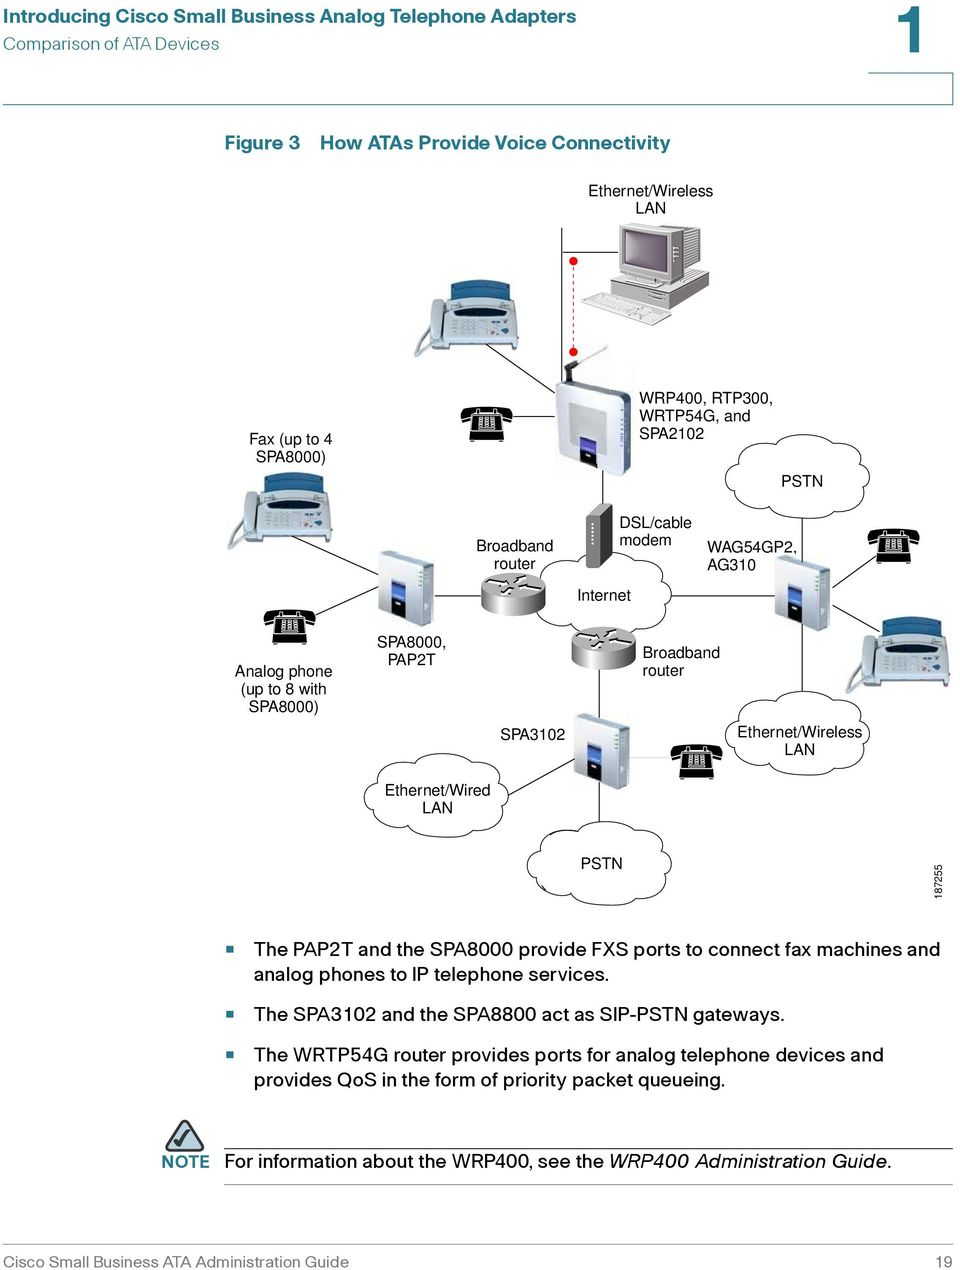 LAN PSTN 187255 The PAP2T and the SPA8000 provide FXS ports to connect fax machines and analog phones to IP telephone services. The SPA3102 and the SPA8800 act as SIP-PSTN gateways.